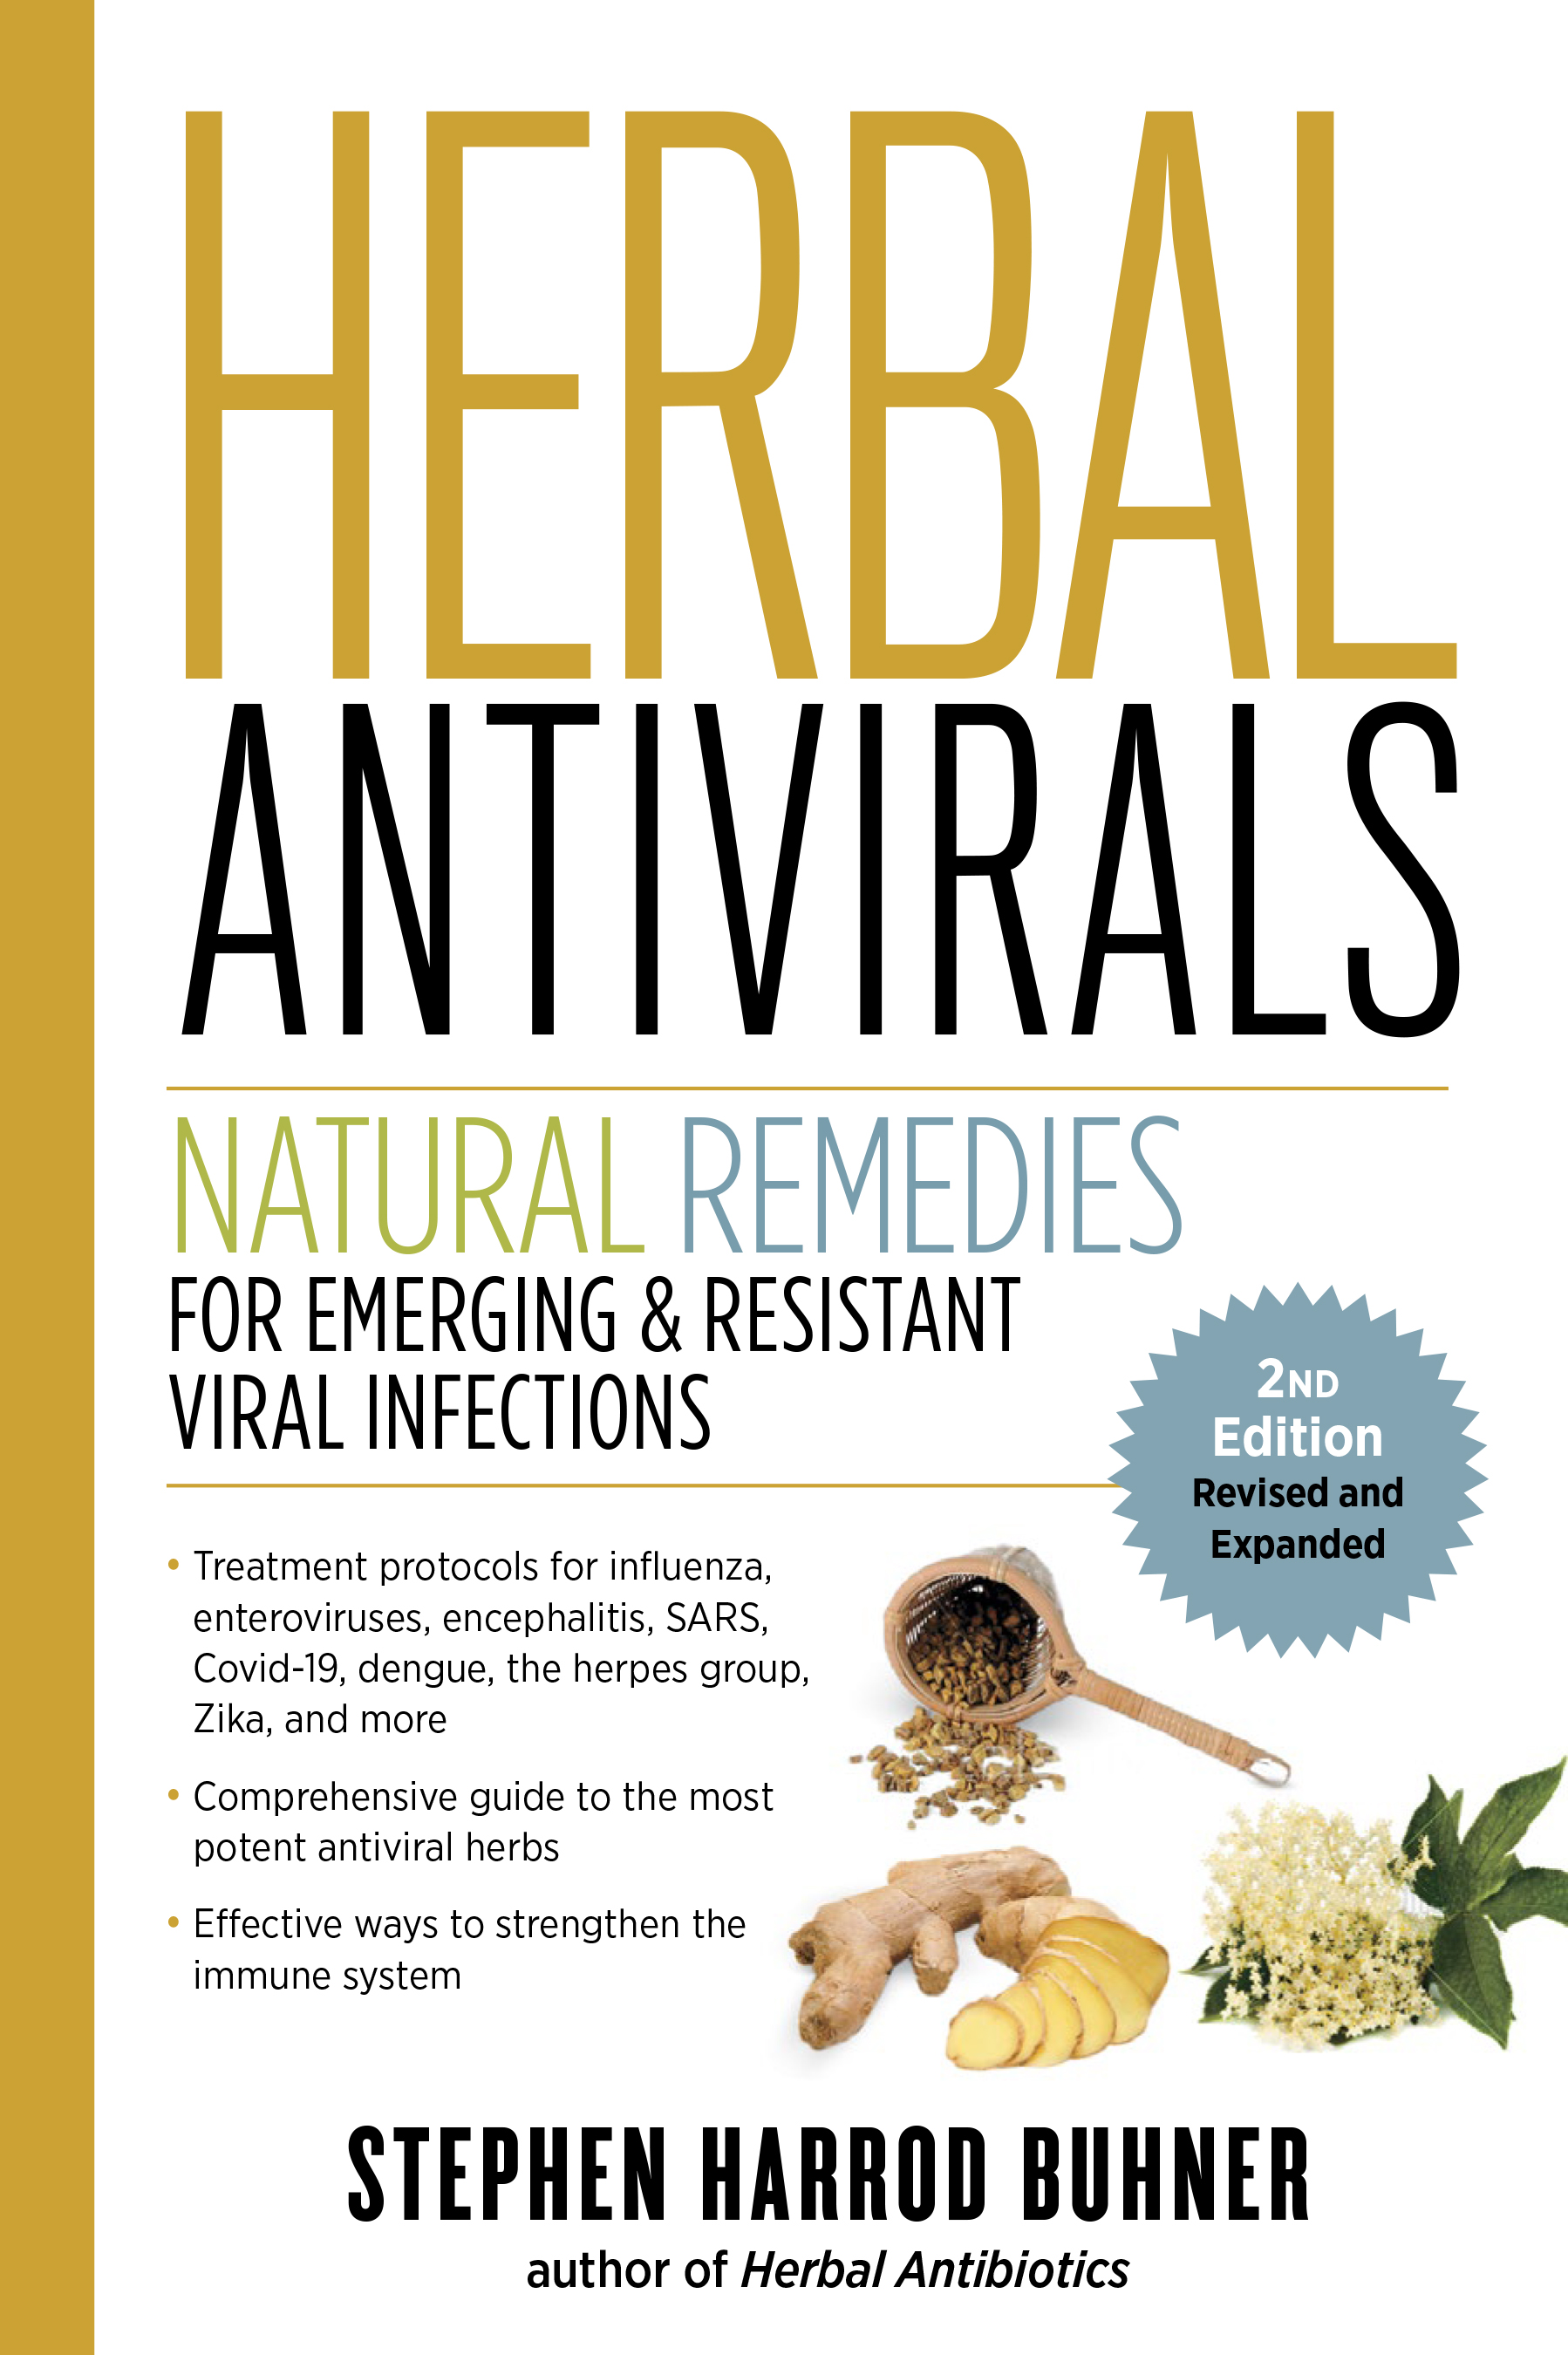 Herbal Antivirals, 2nd Edition Natural Remedies for Emerging & Resistant Viral Infections - Stephen Harrod Buhner